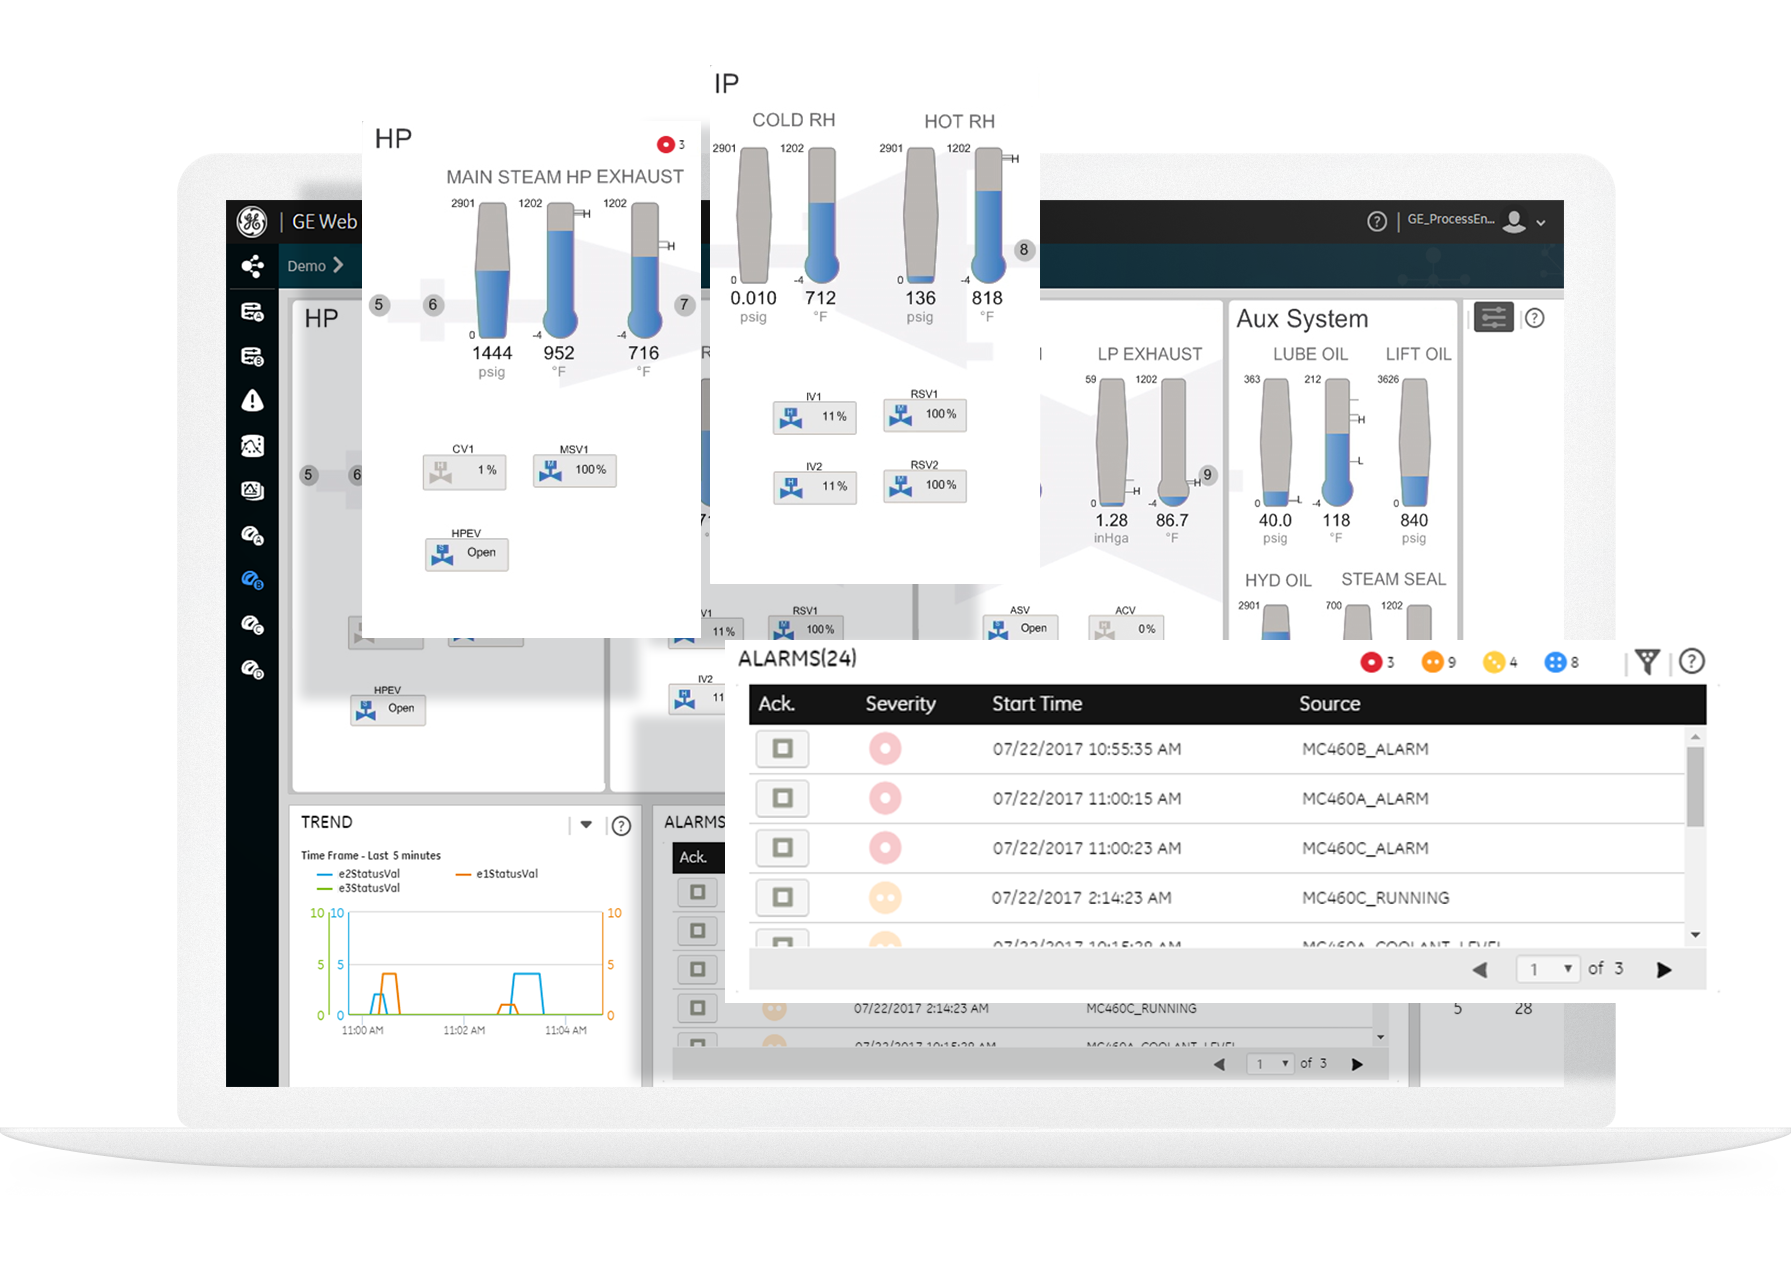 HMI/SCADA software from GE Digital | iFIX for alarm management and operational visibility